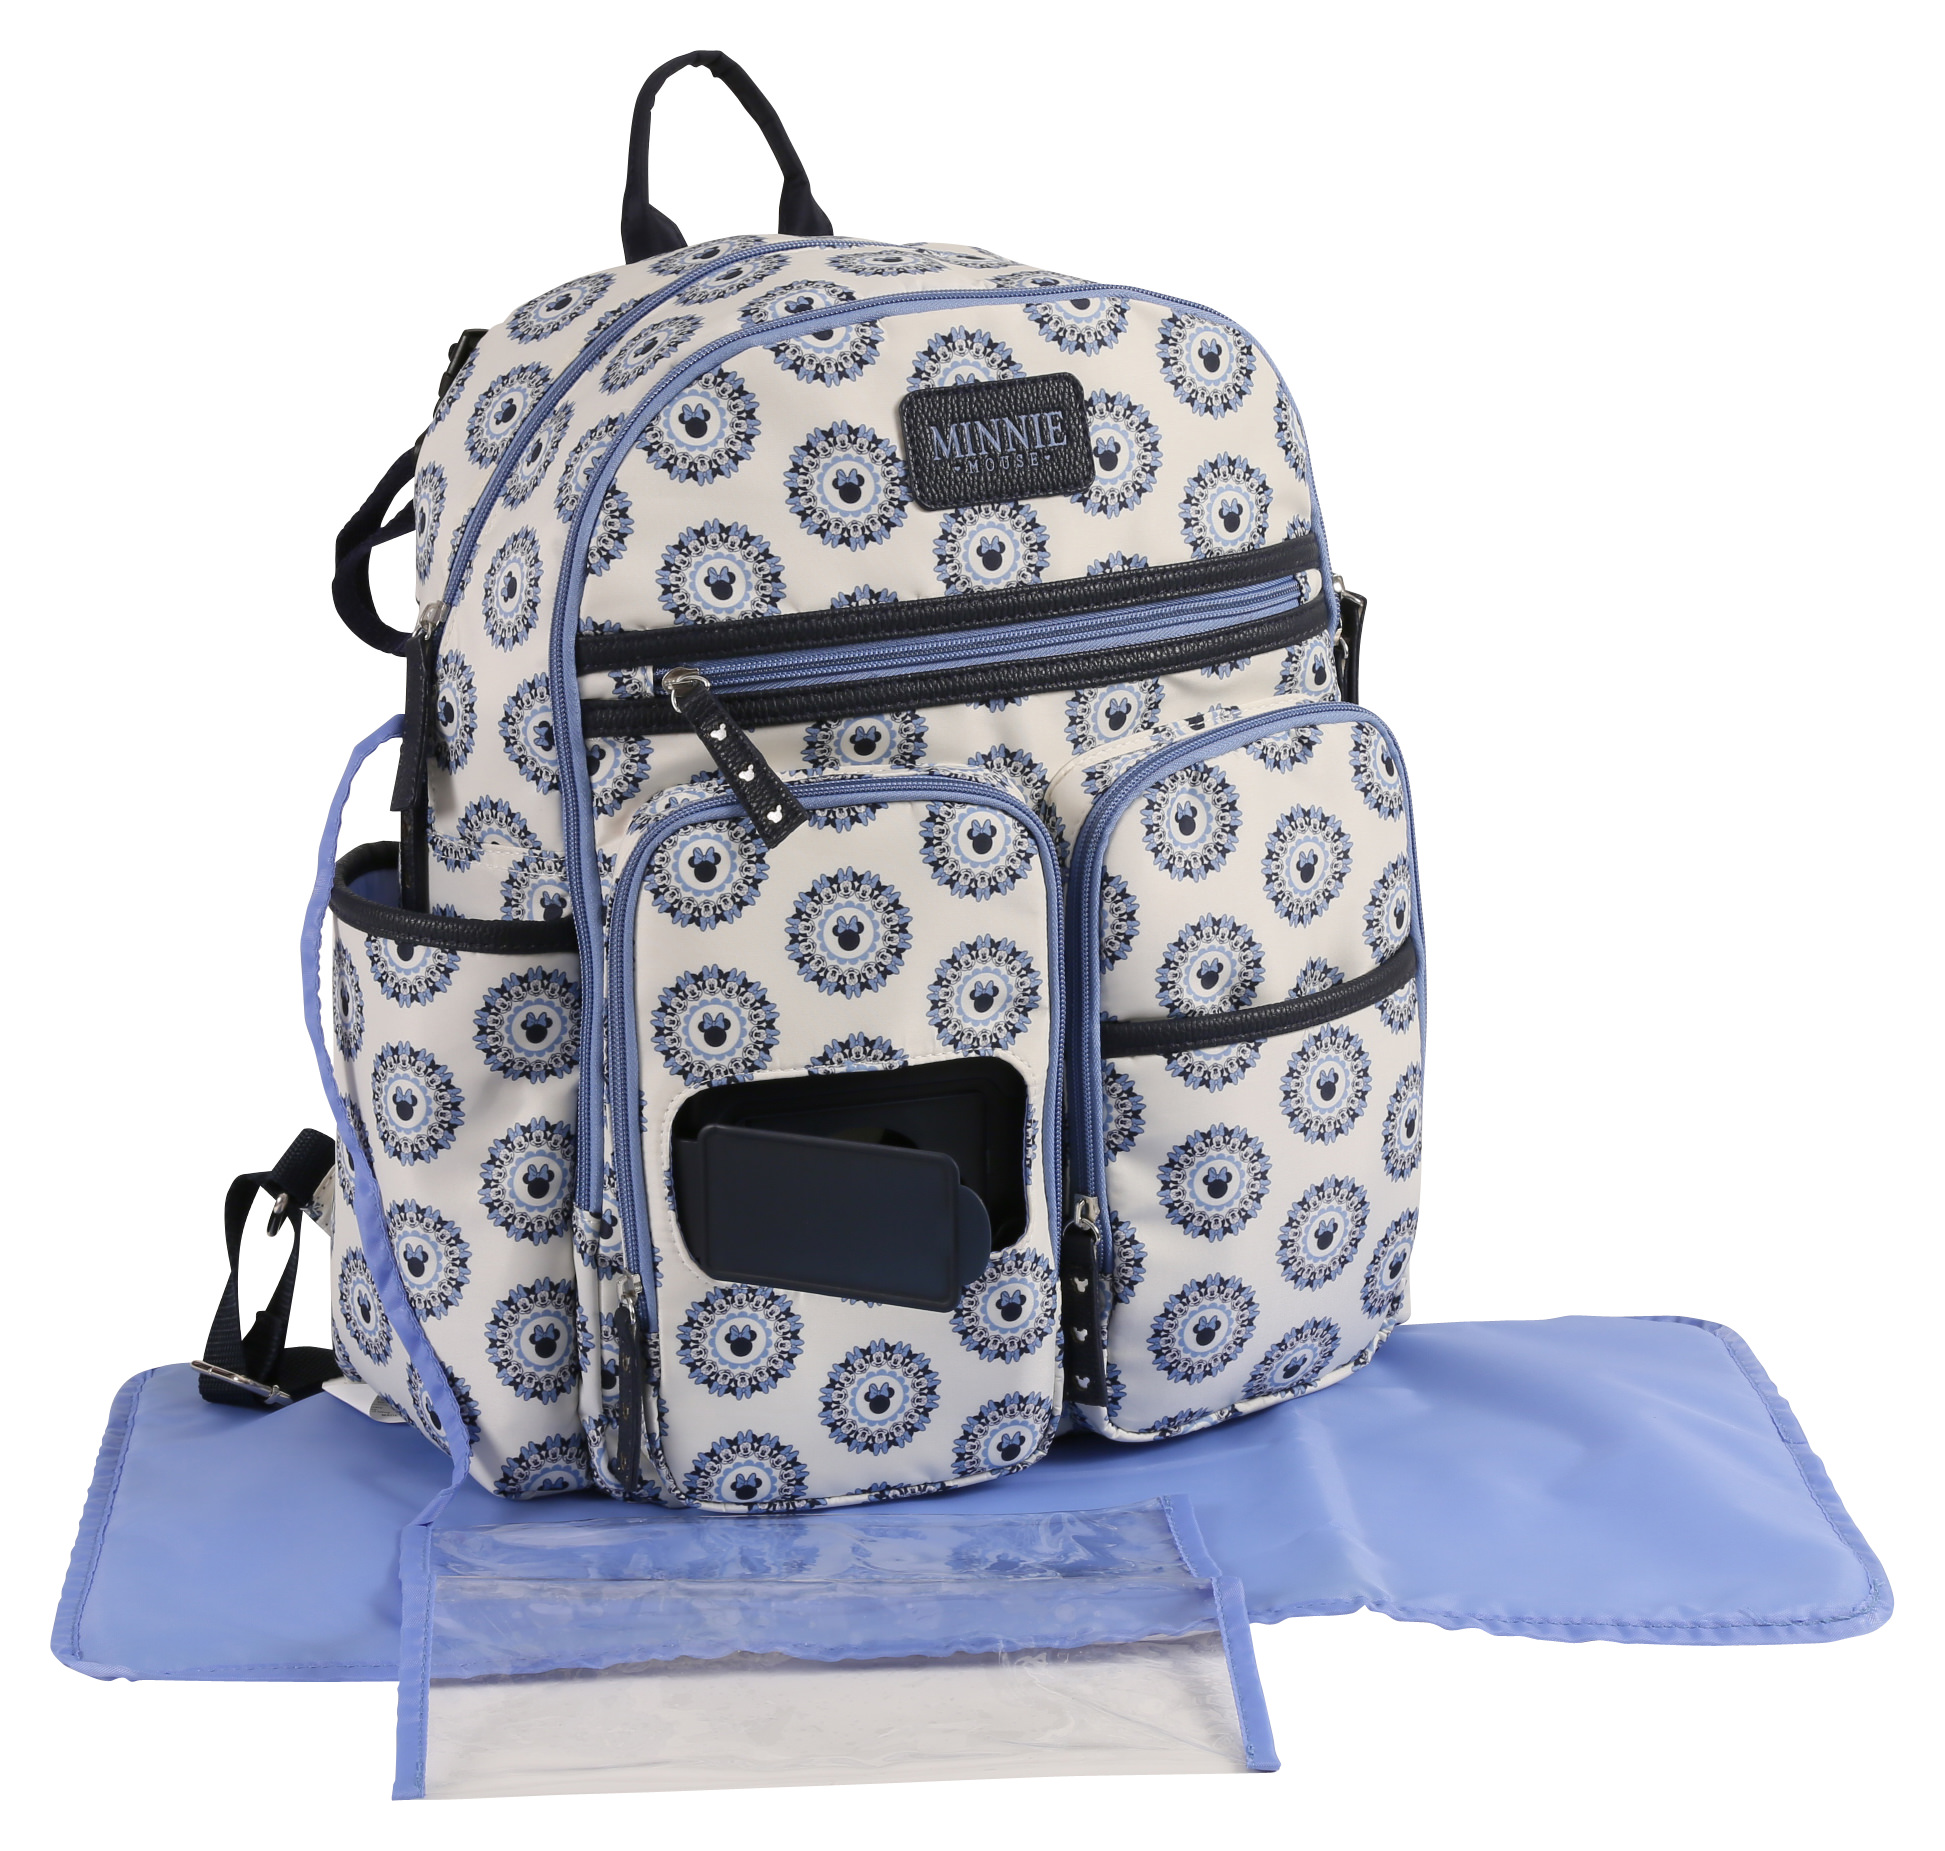 Disney Mickey Mouse Backpack Diaper Bag, White/Blue